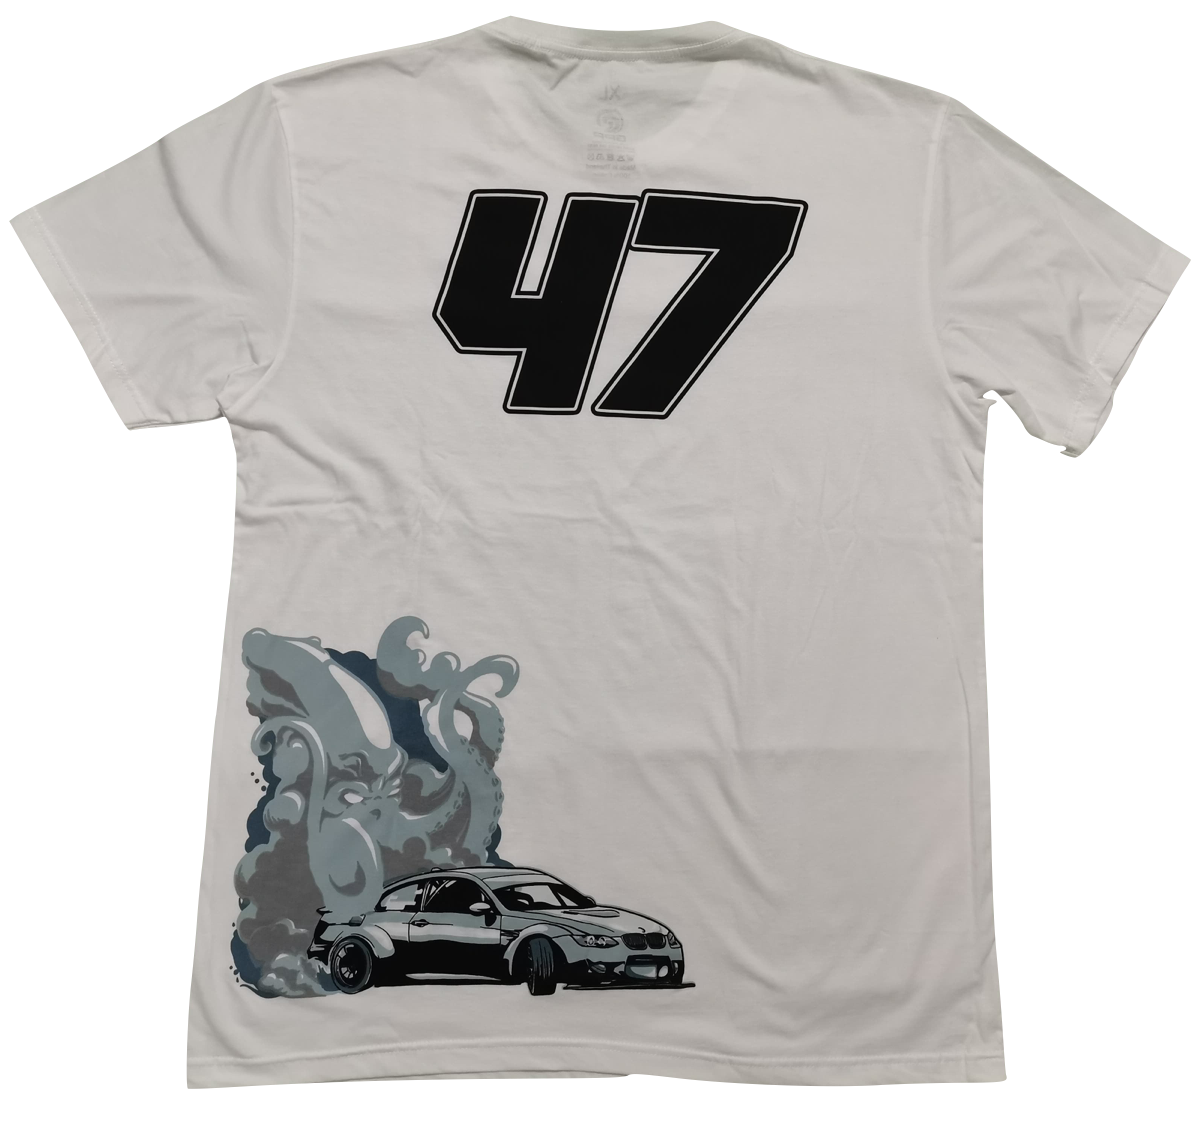 NEW 47 Merch - T Shirt